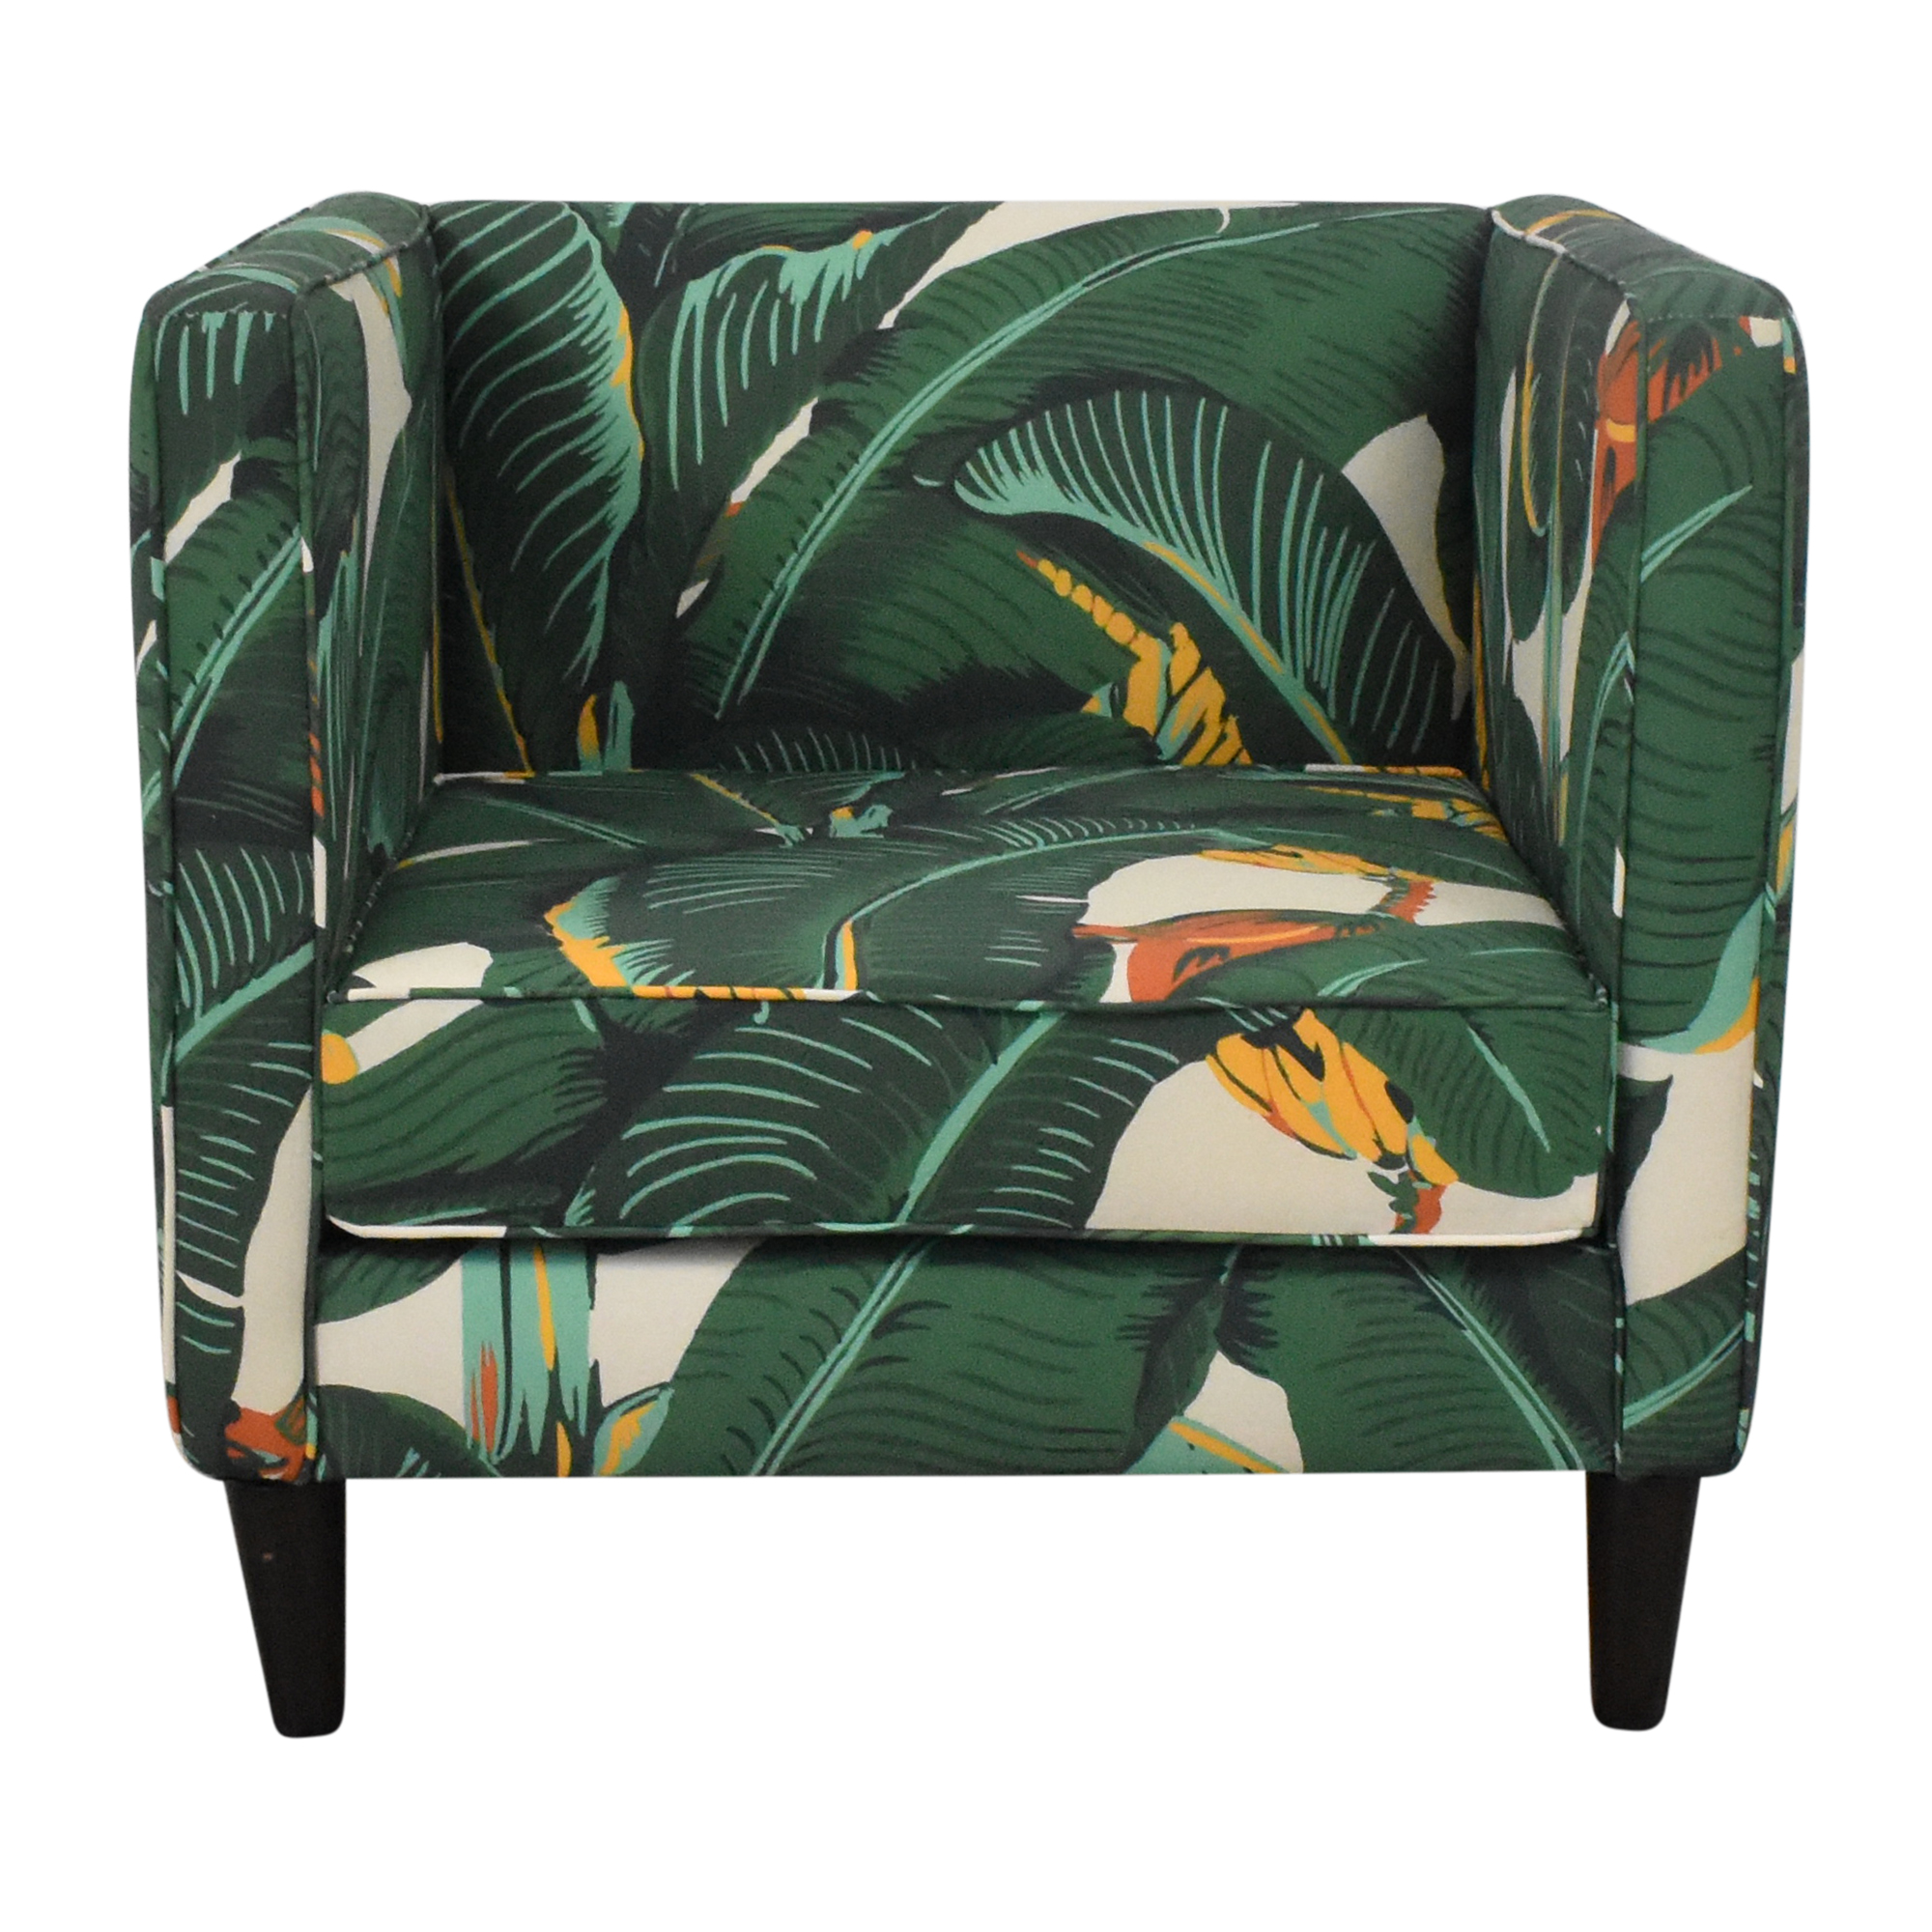 The Inside The Inside Martinique Tuxedo Chair ma